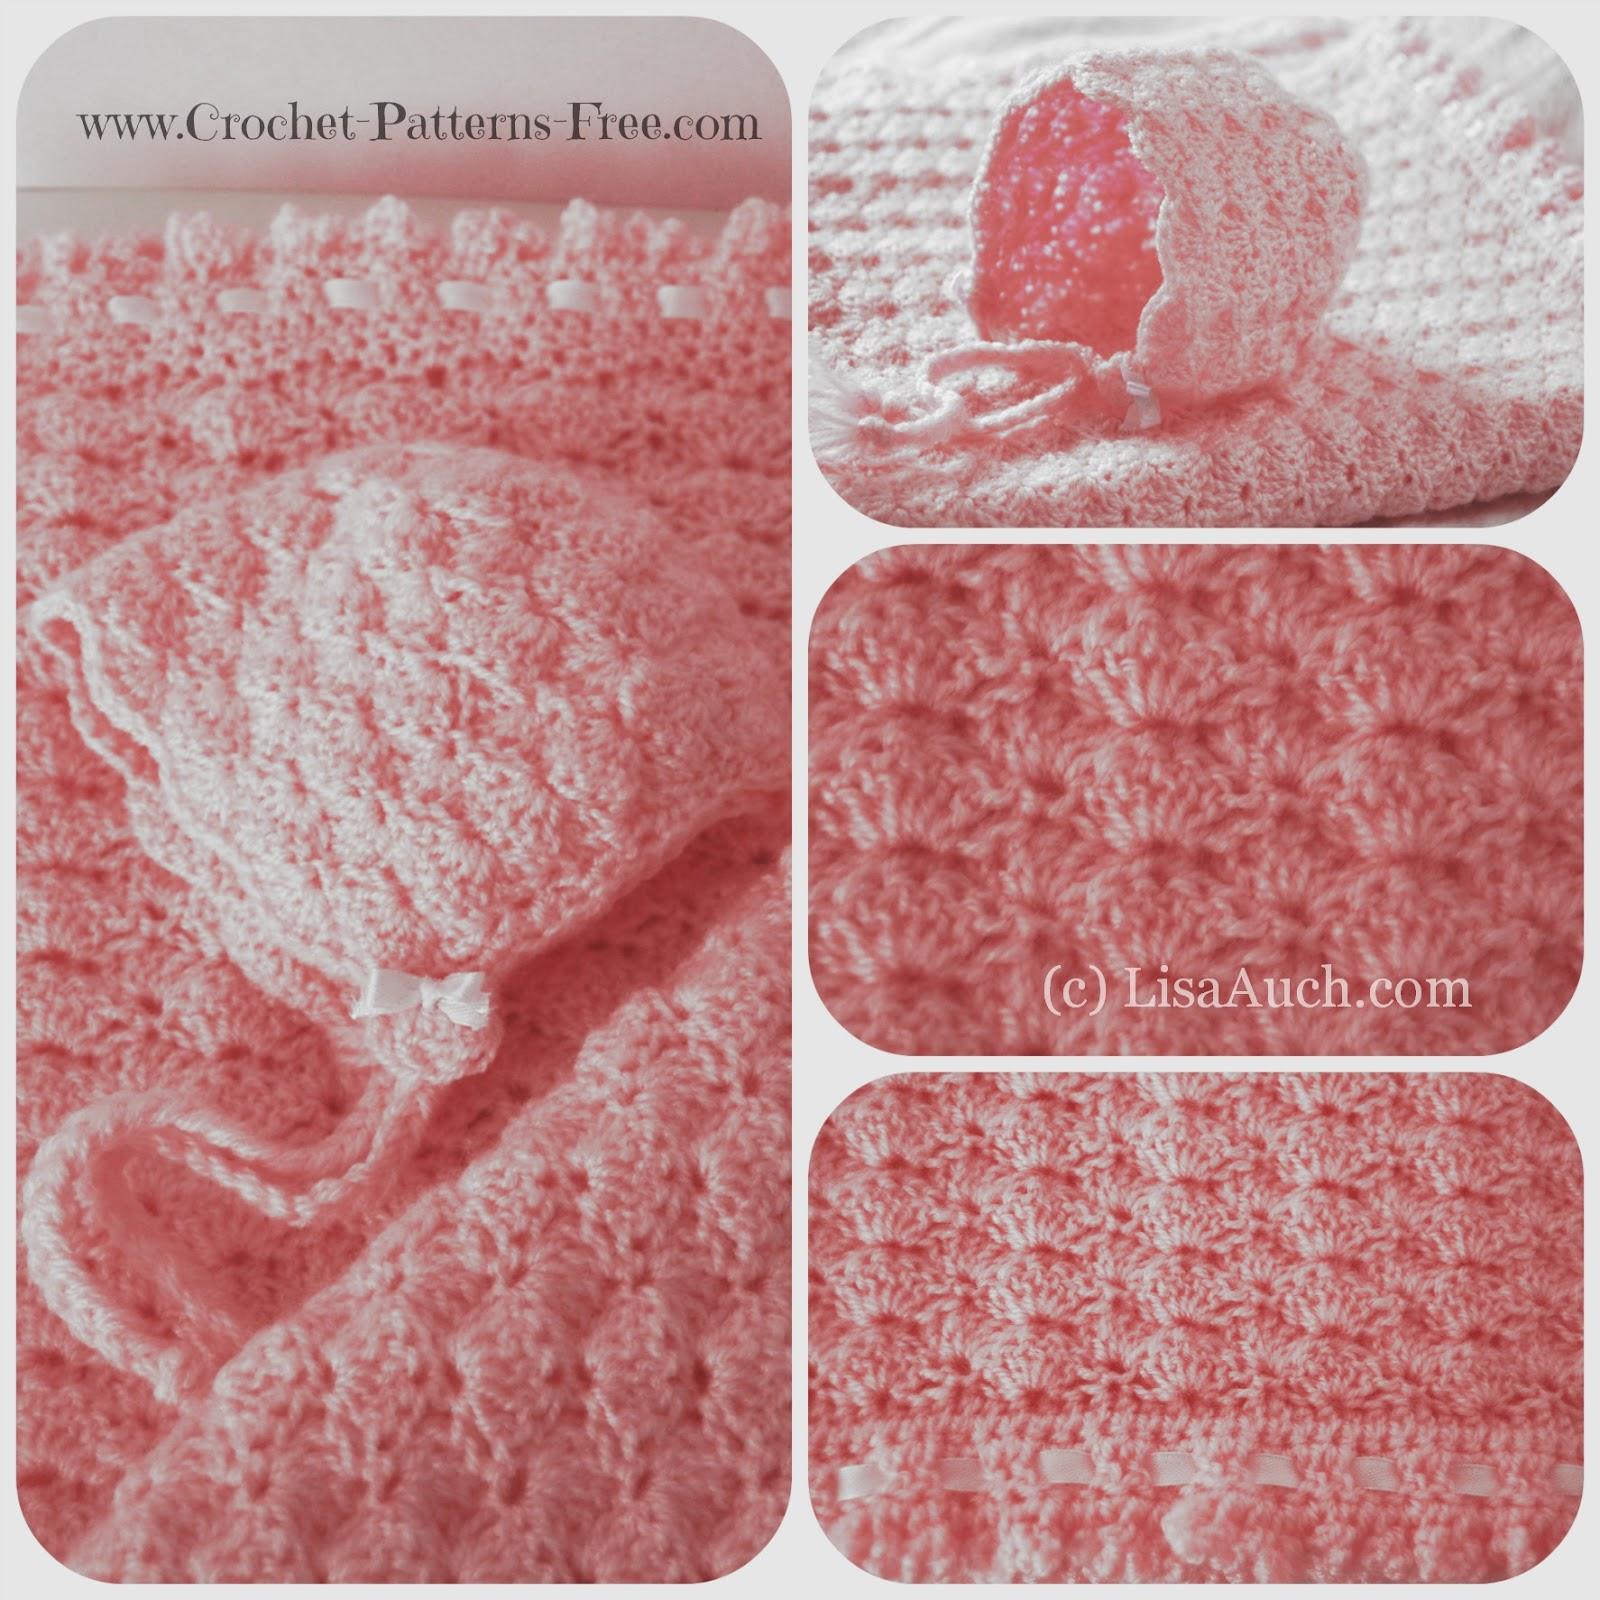 free crochet patterns baby bonnets, vintage baby bonnet, baby blanket free patterns